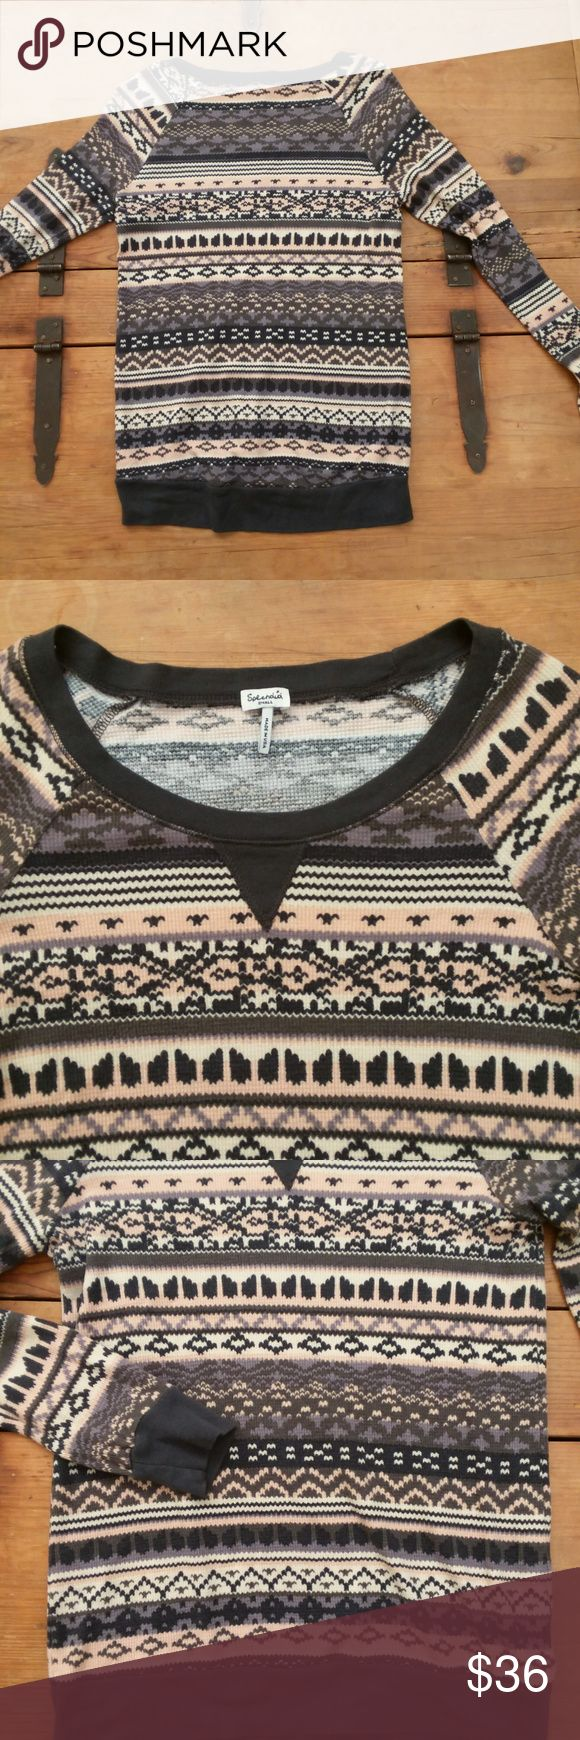 Splendid Boho Aztec Womens Thermal Longsleeve Top SPLENDID long sleeve shirt scoopneck thermal top.  Beautiful and trendy Aztec / tribal / Boho print with navy blue and yellow tones.  Soft and cozy!  This fantastic top is perfect as either a layer or stand-alone piece.  Excellent condition! Size small. Splendid Tops Sweatshirts & Hoodies